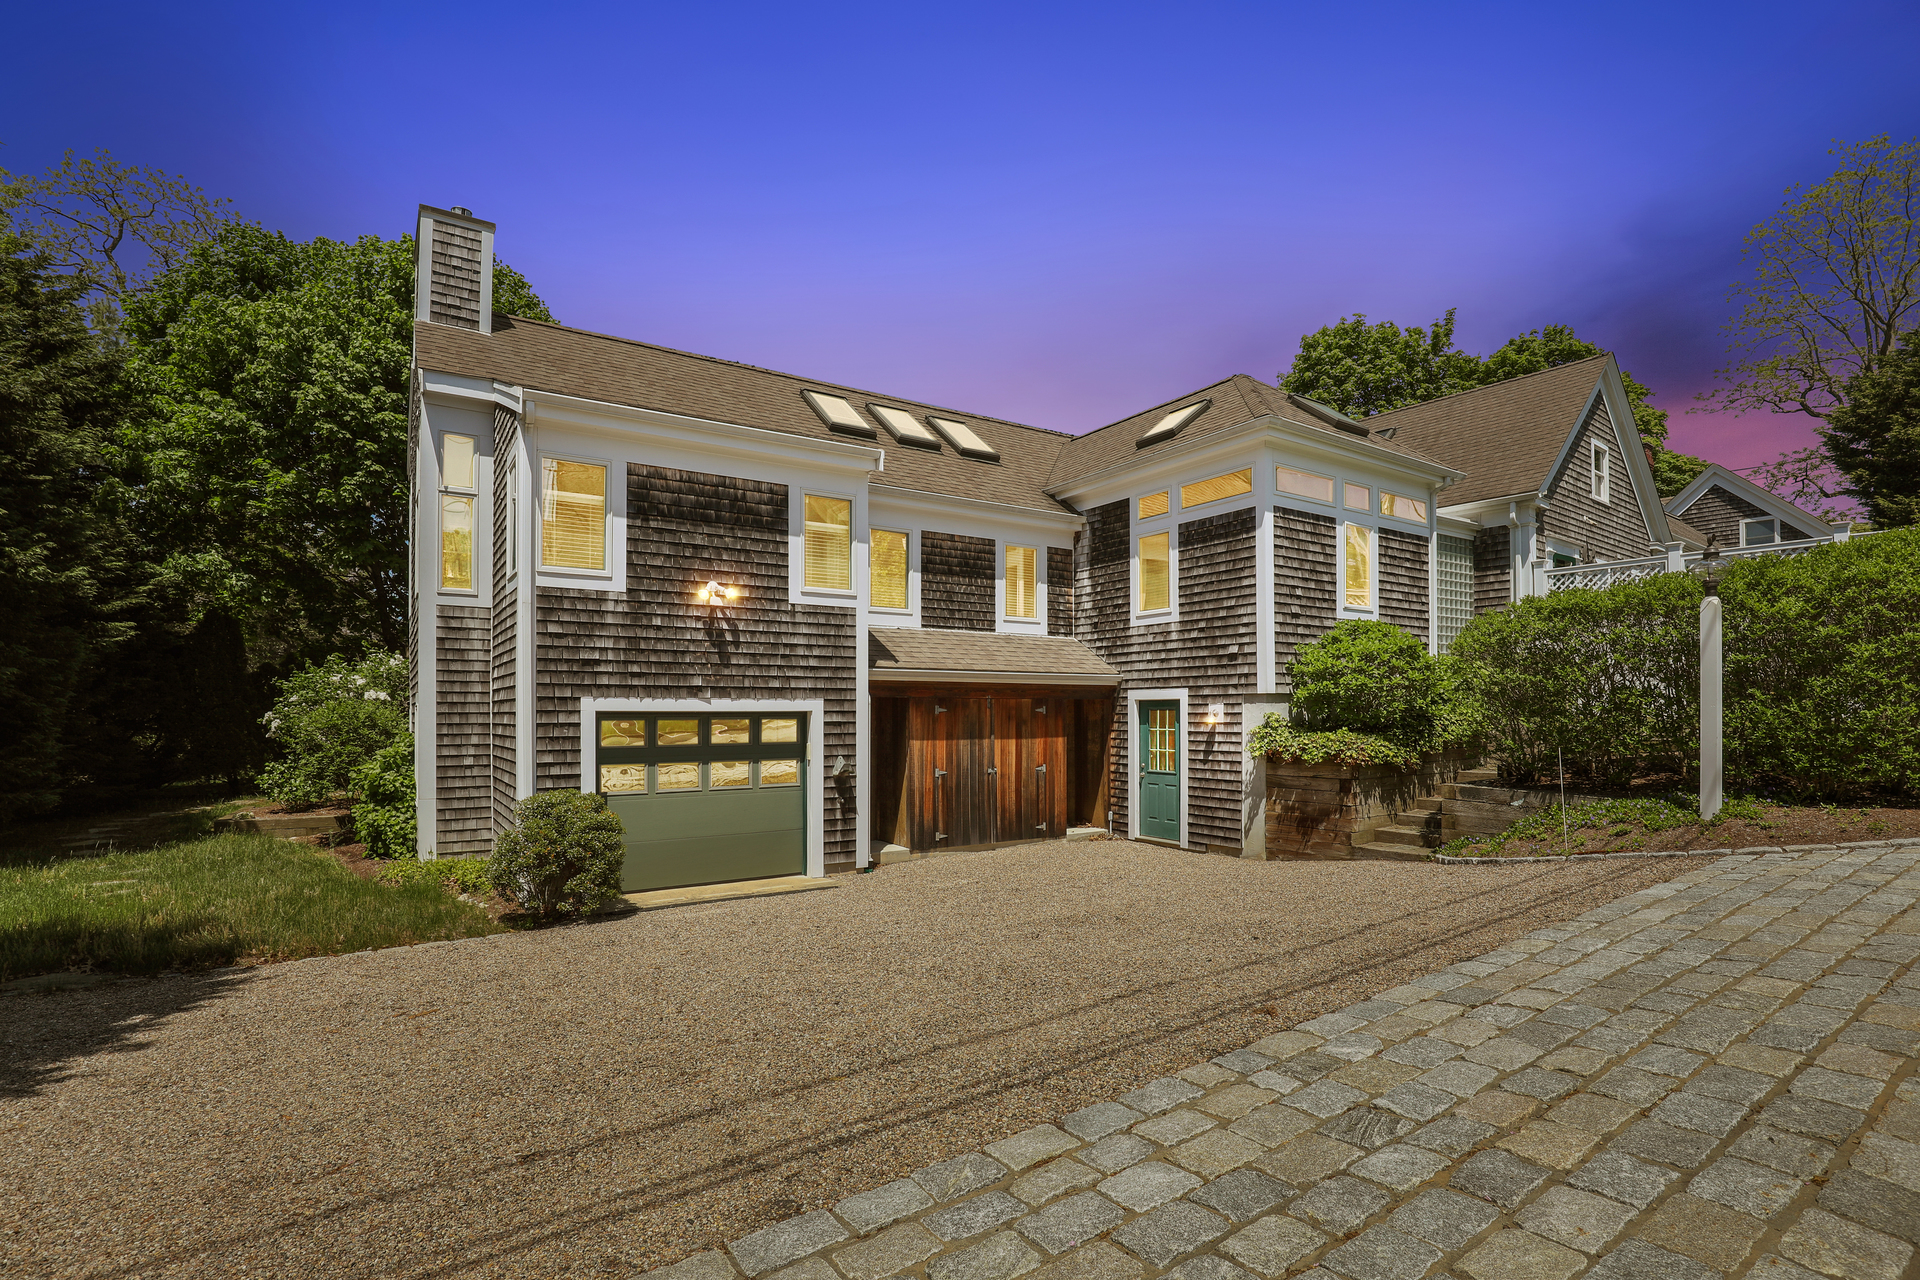 12 Fire Station Road, Osterville, MA 02655 | Listed By Griffin Realty Group | MLS 22102782